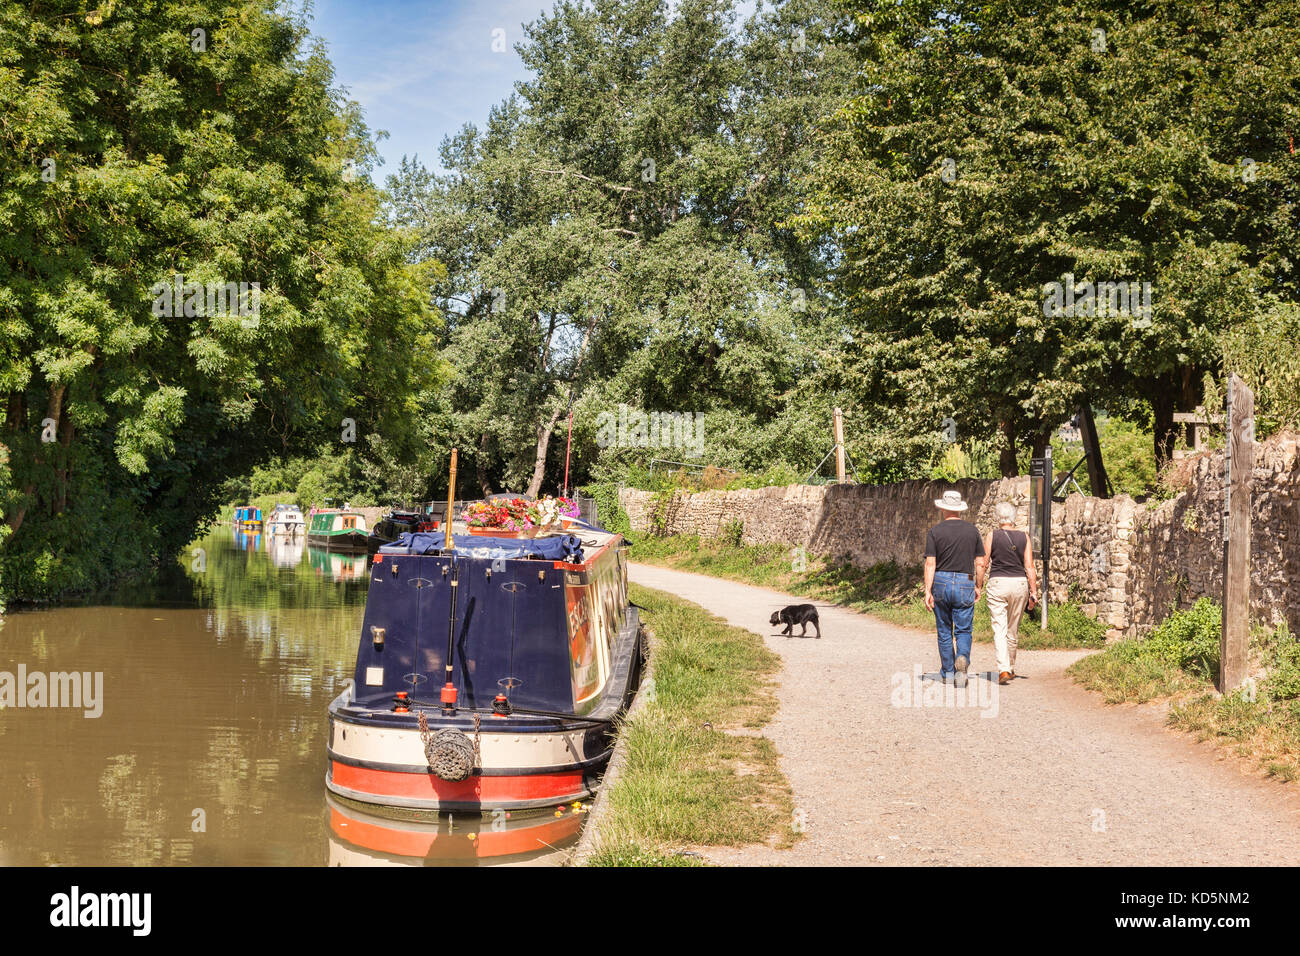 7 July 2017: Bradford on Avon, Somerset, England, UK - Couple with dog walking on the tow path beside a row of narrowboats - Stock Image